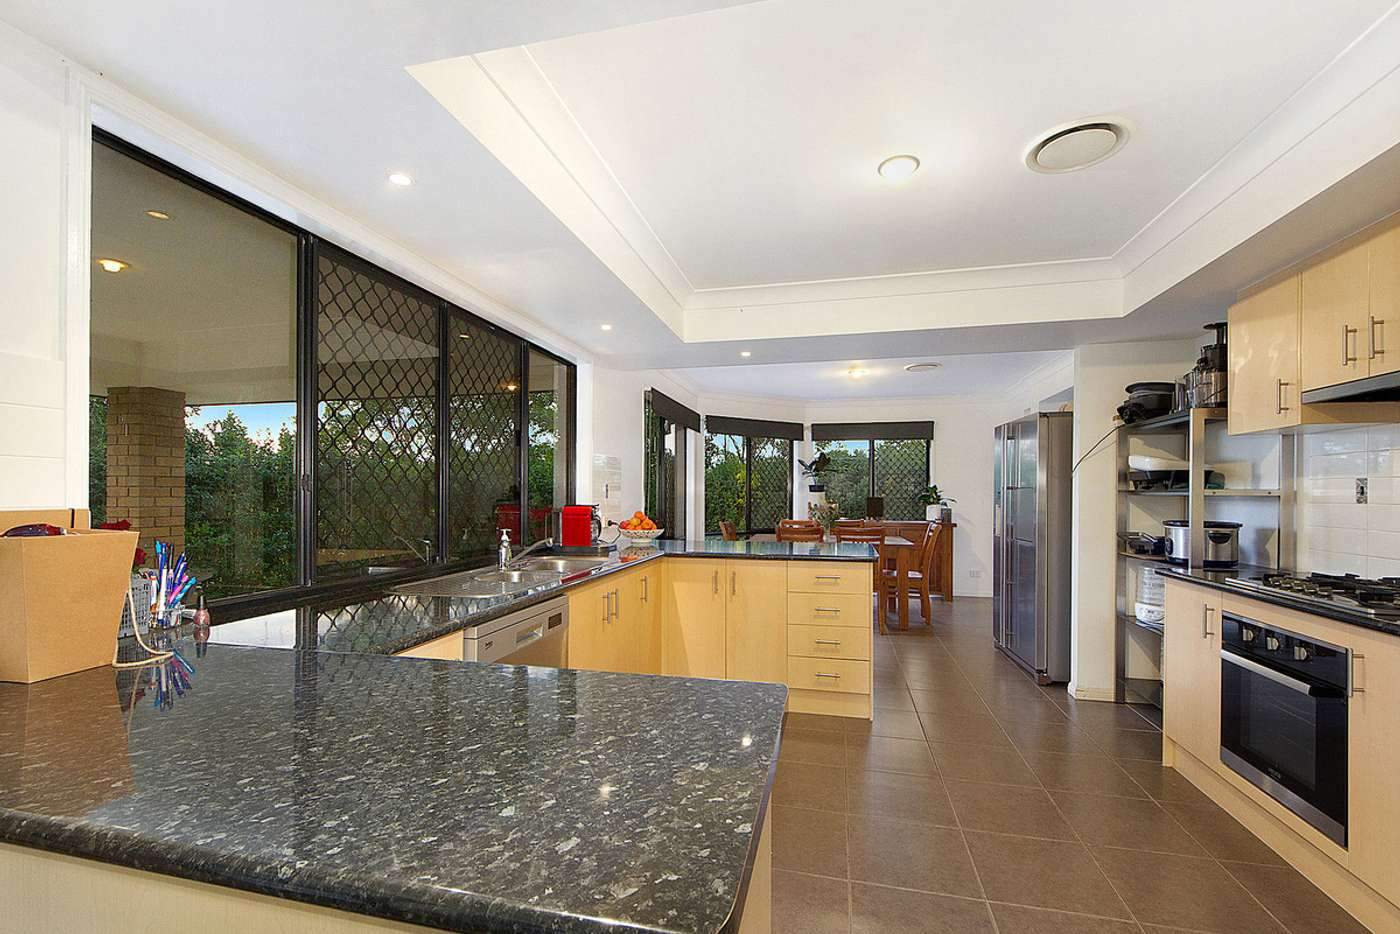 Main view of Homely house listing, 21 Snowwood Street, Reedy Creek QLD 4227